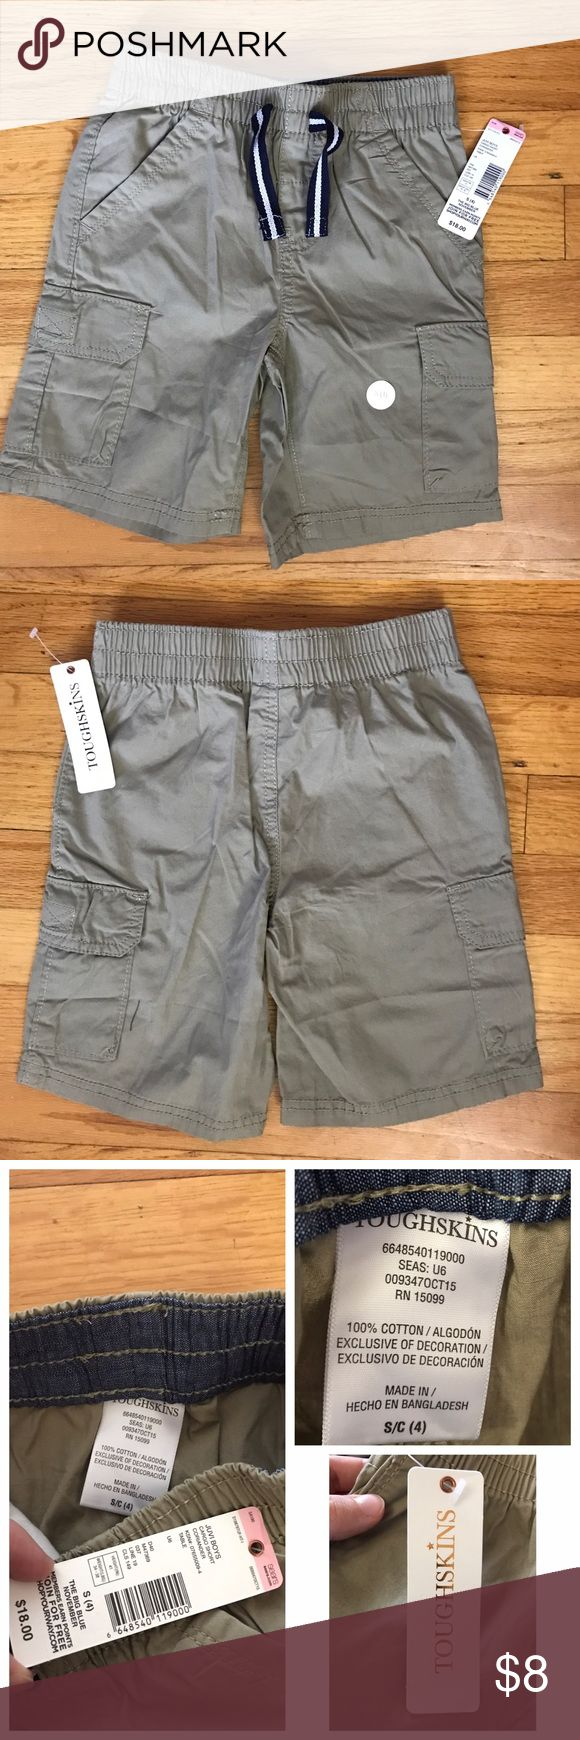 🚀Toughskins boys shorts size 4 small Toughskins boys shorts purchased from sears. Bought last summer and thought the size small was a 5 but it was not as when they arrived tag said small size 4. 🚨BRAND NEW WITH TAGS as pictured. Never worn. toughskins Bottoms Shorts